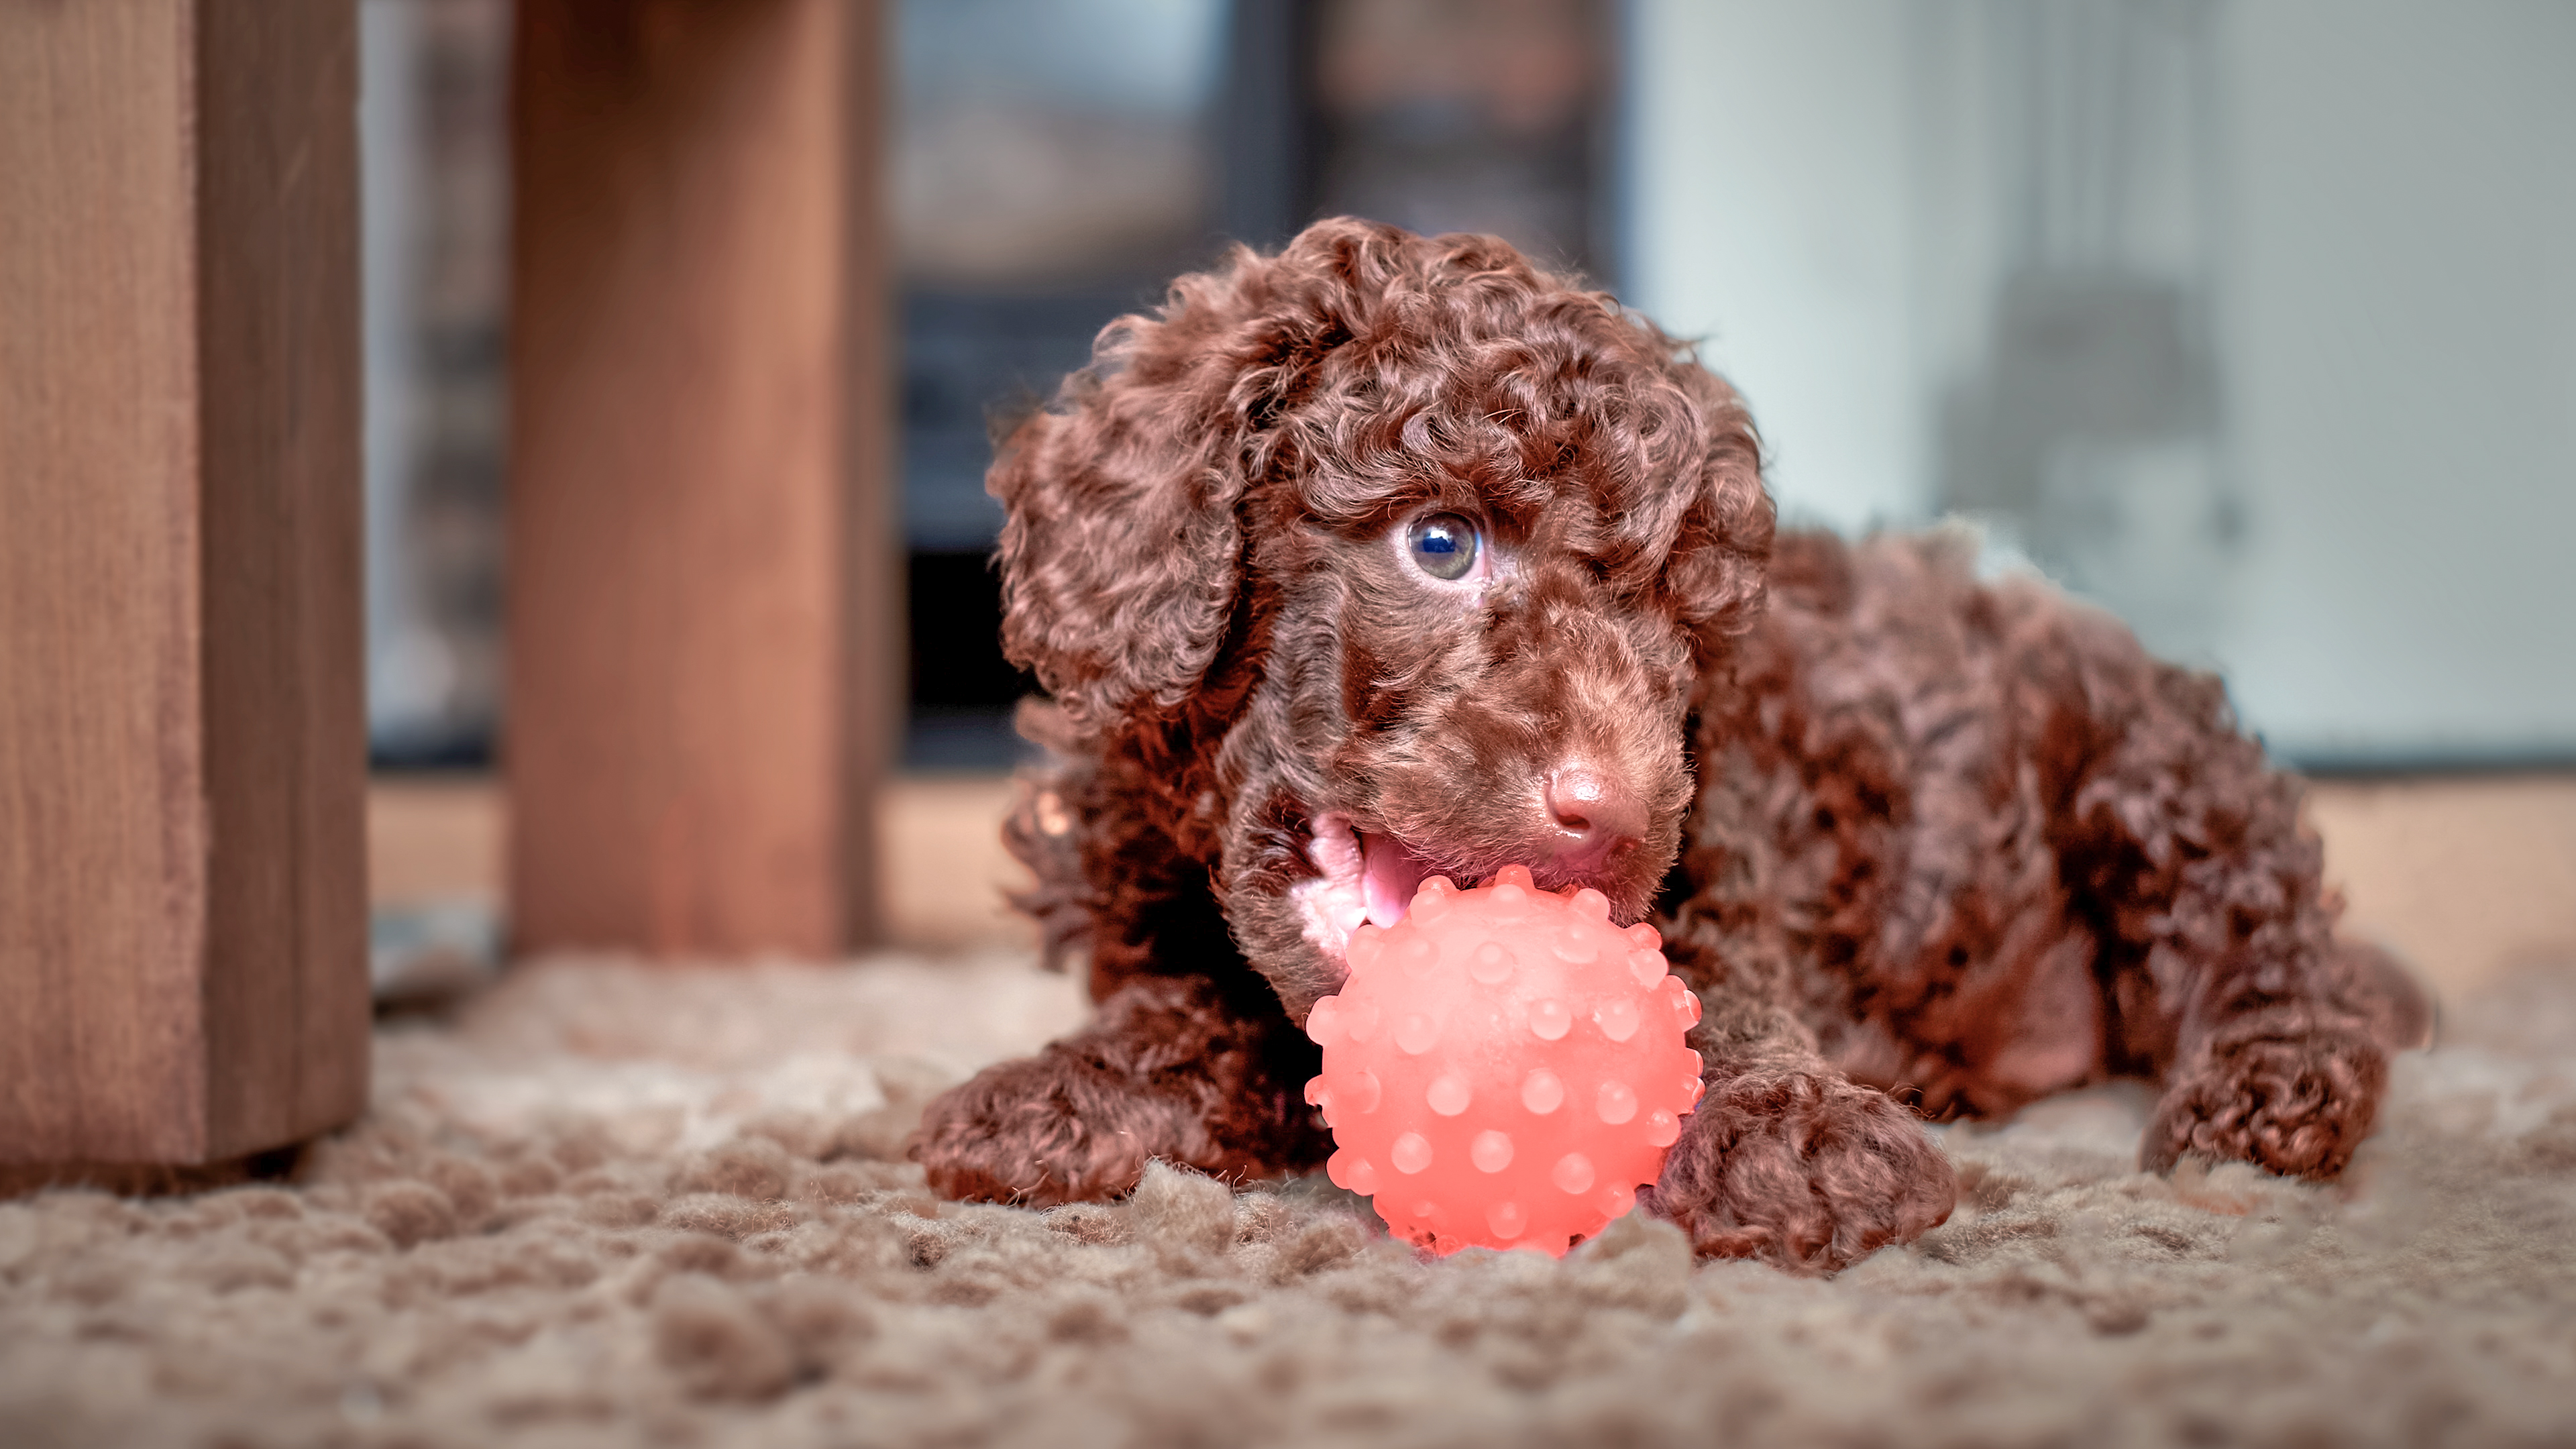 Miniature Poodle puppy lying down on a rug playing with a ball